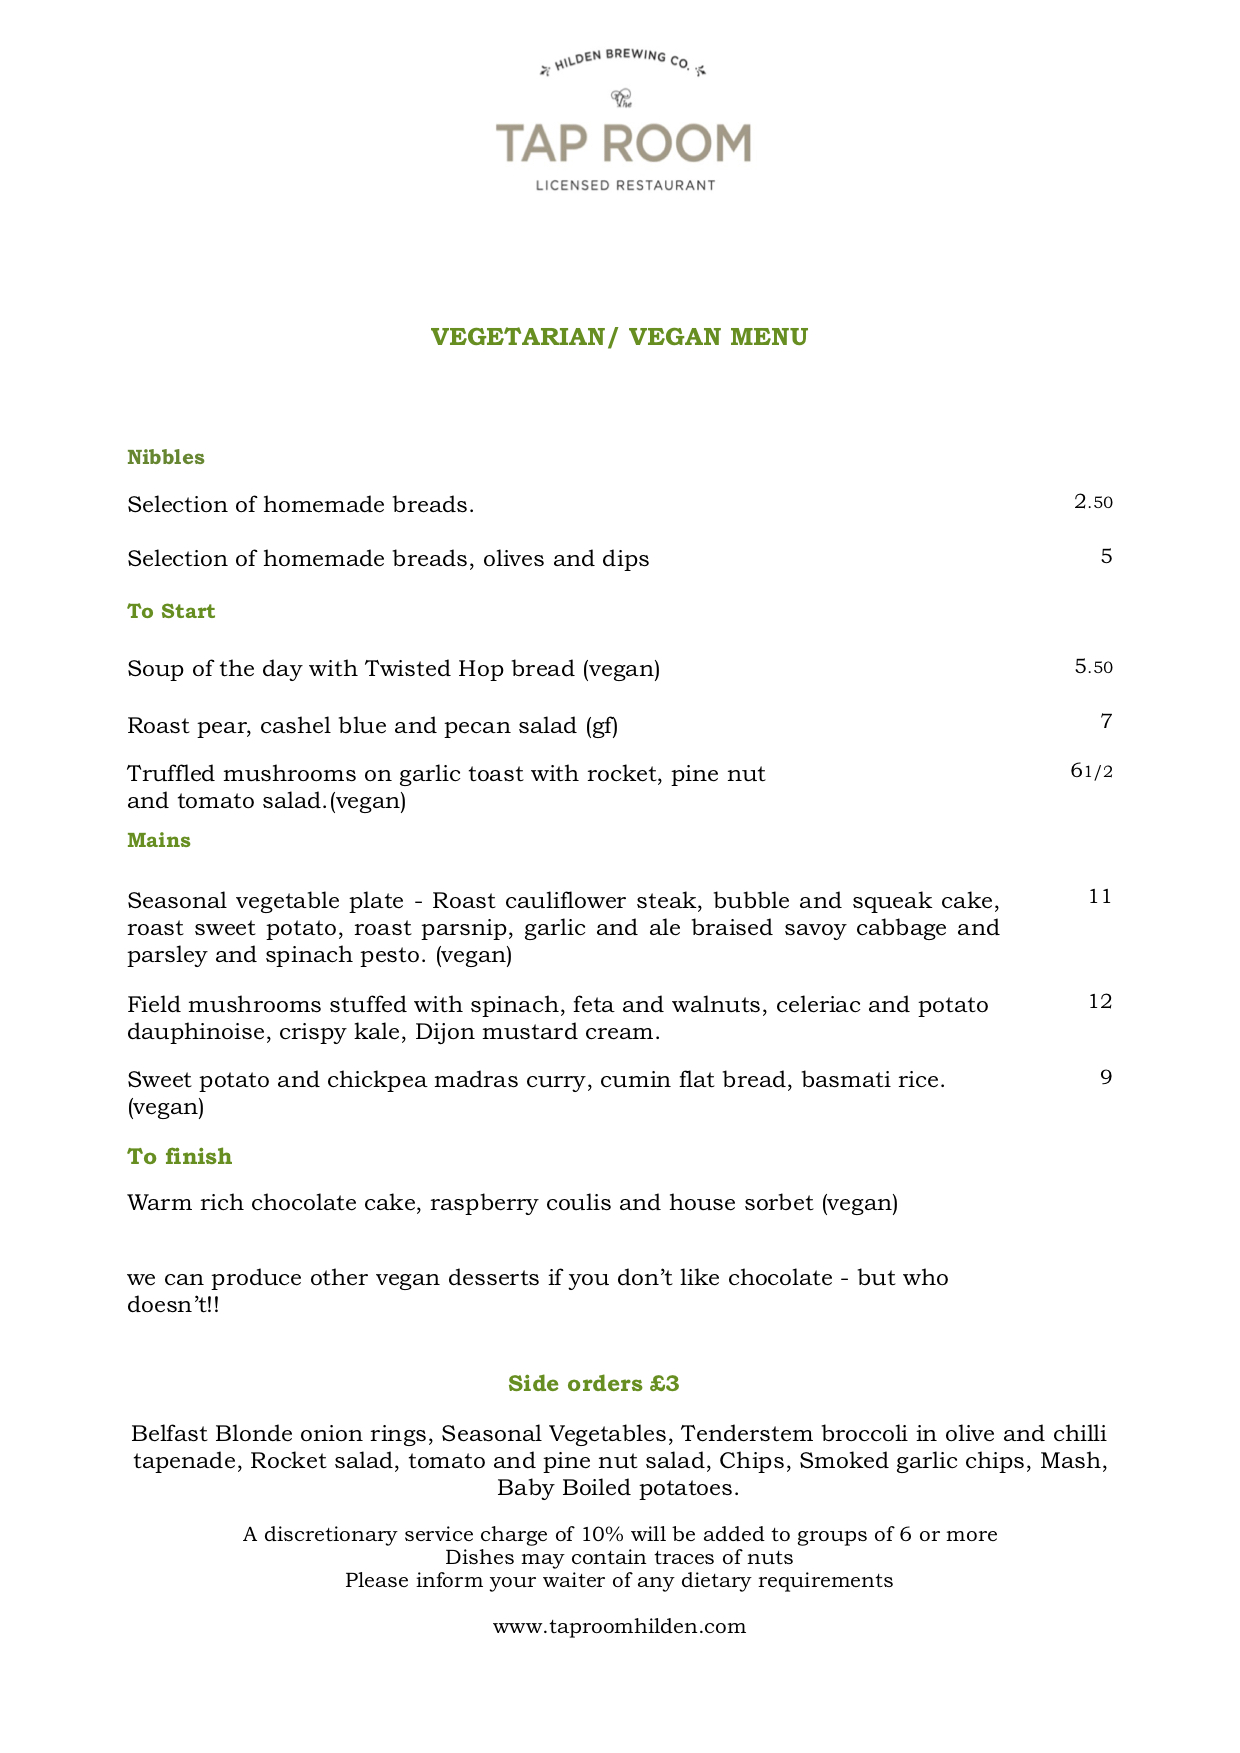 tap room vegetarian menu